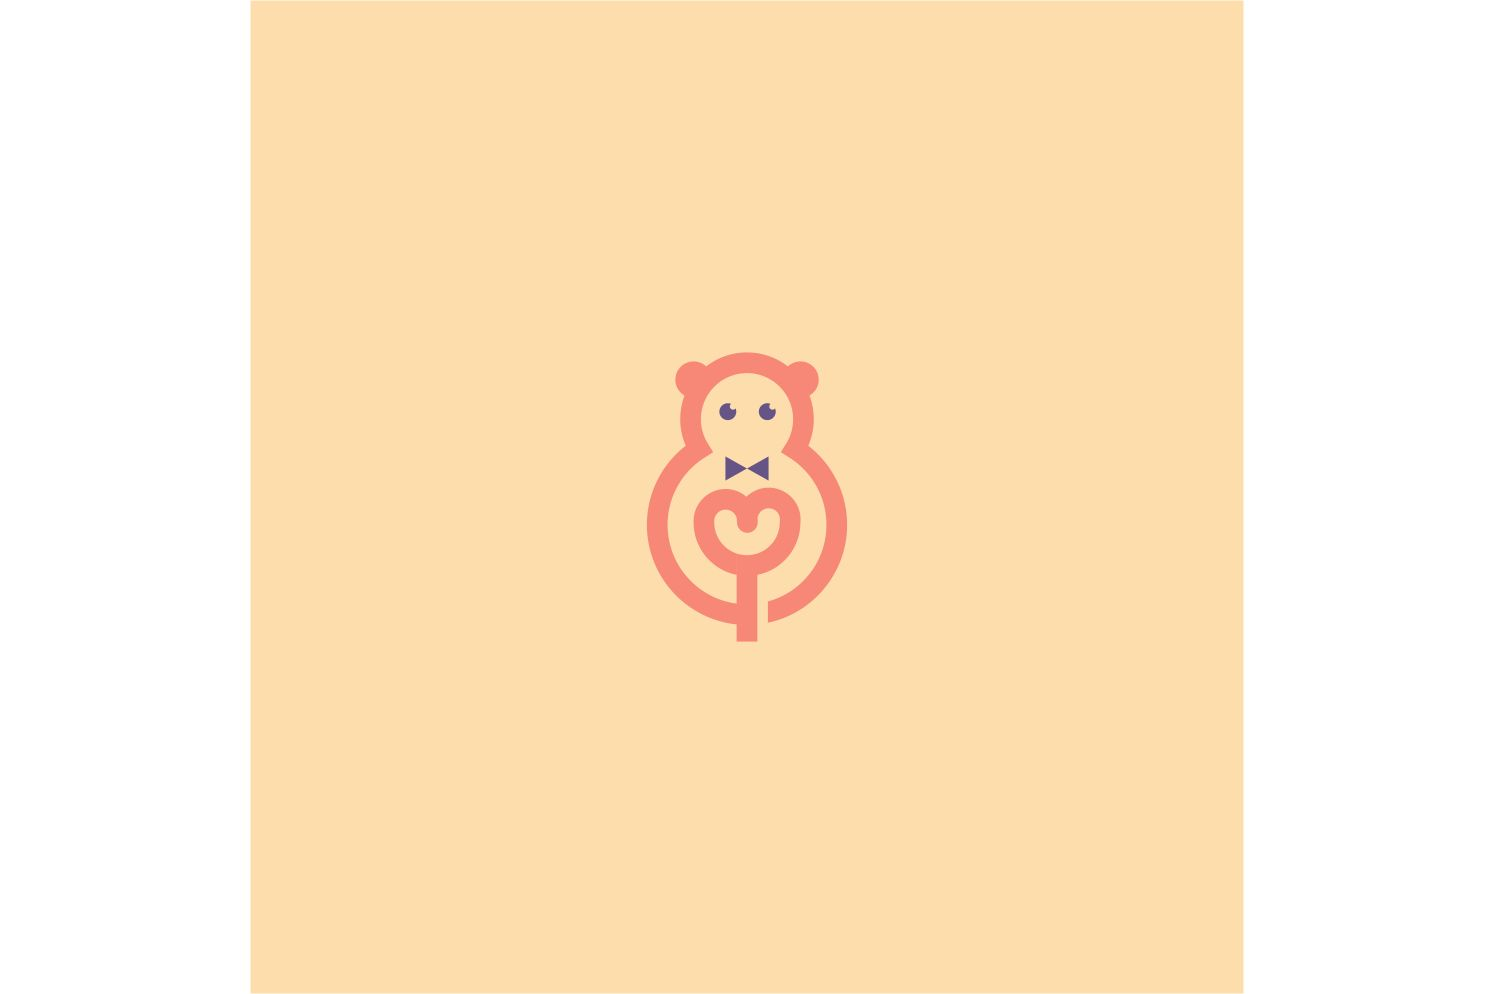 Download Free Bear Doll Logo Mascot Graphic By Bentang Tebe Creative Fabrica for Cricut Explore, Silhouette and other cutting machines.